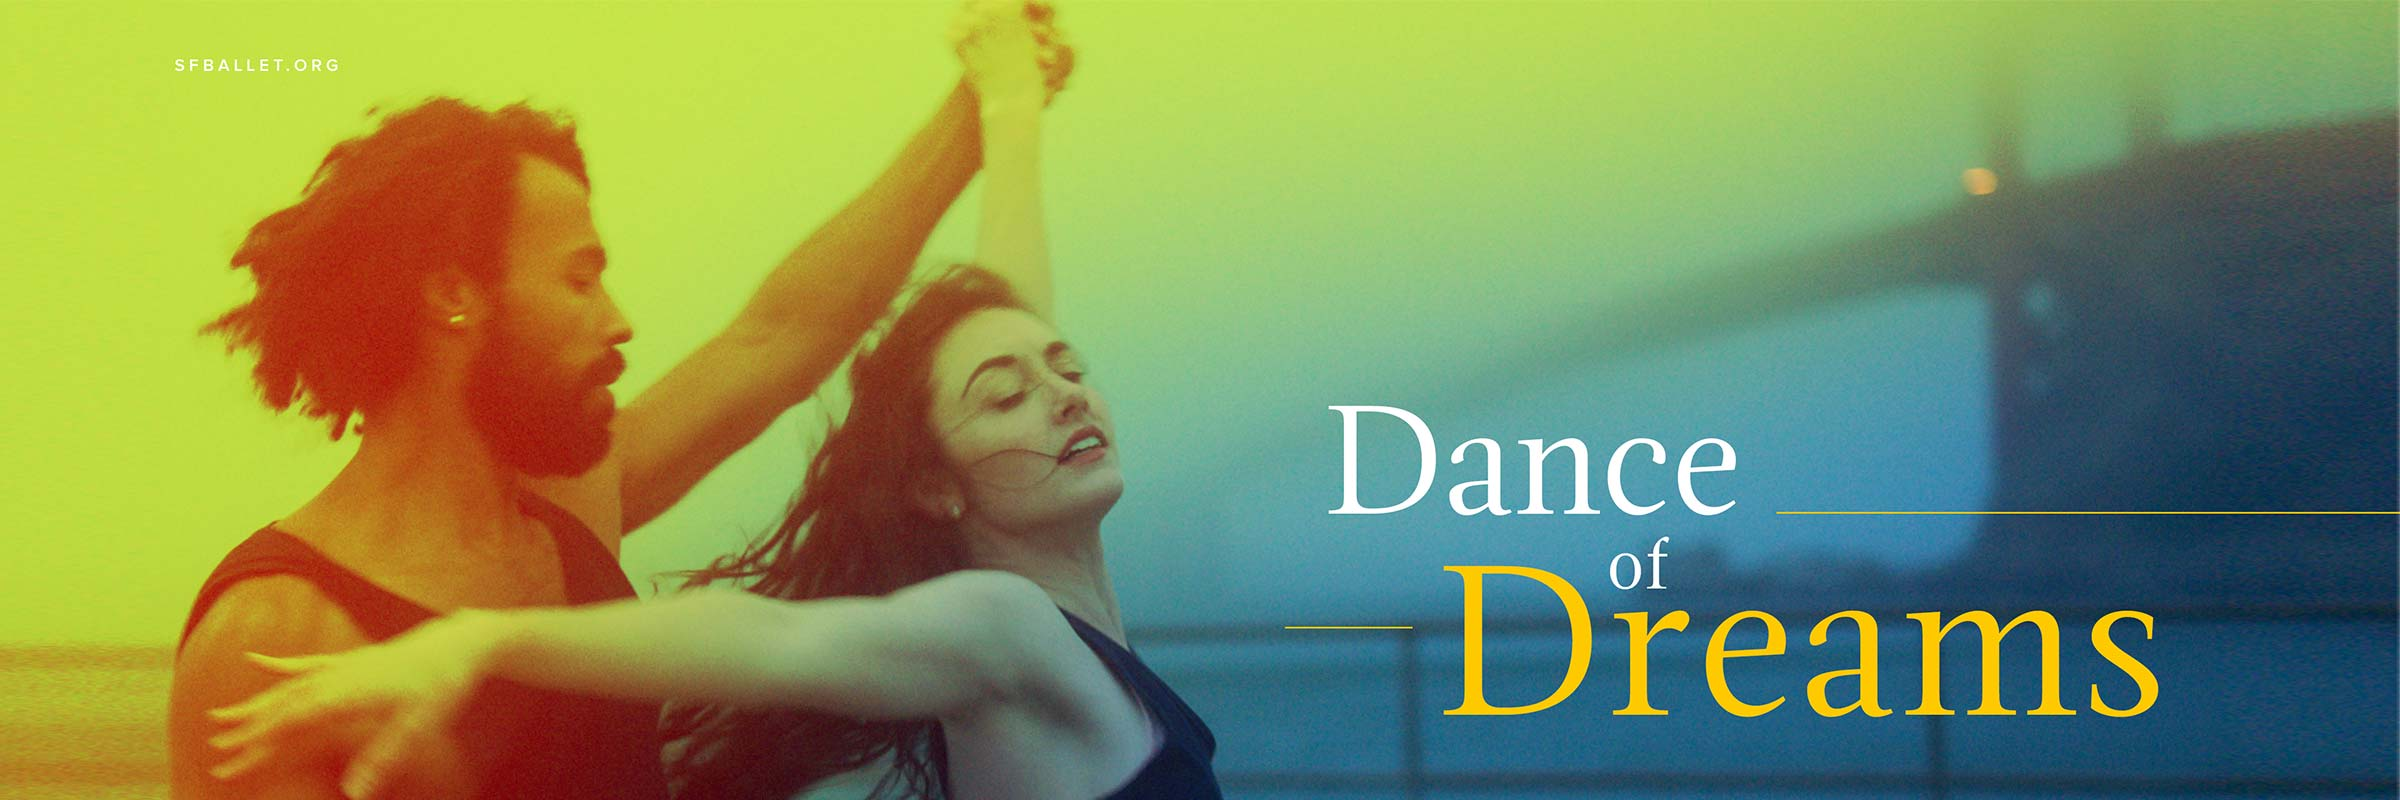 SAN FRANCISCO BALLET RELEASES A NEW DANCE FILM DIRECTED BY BENJAMIN MILLEPIED: DANCE OF DREAMS